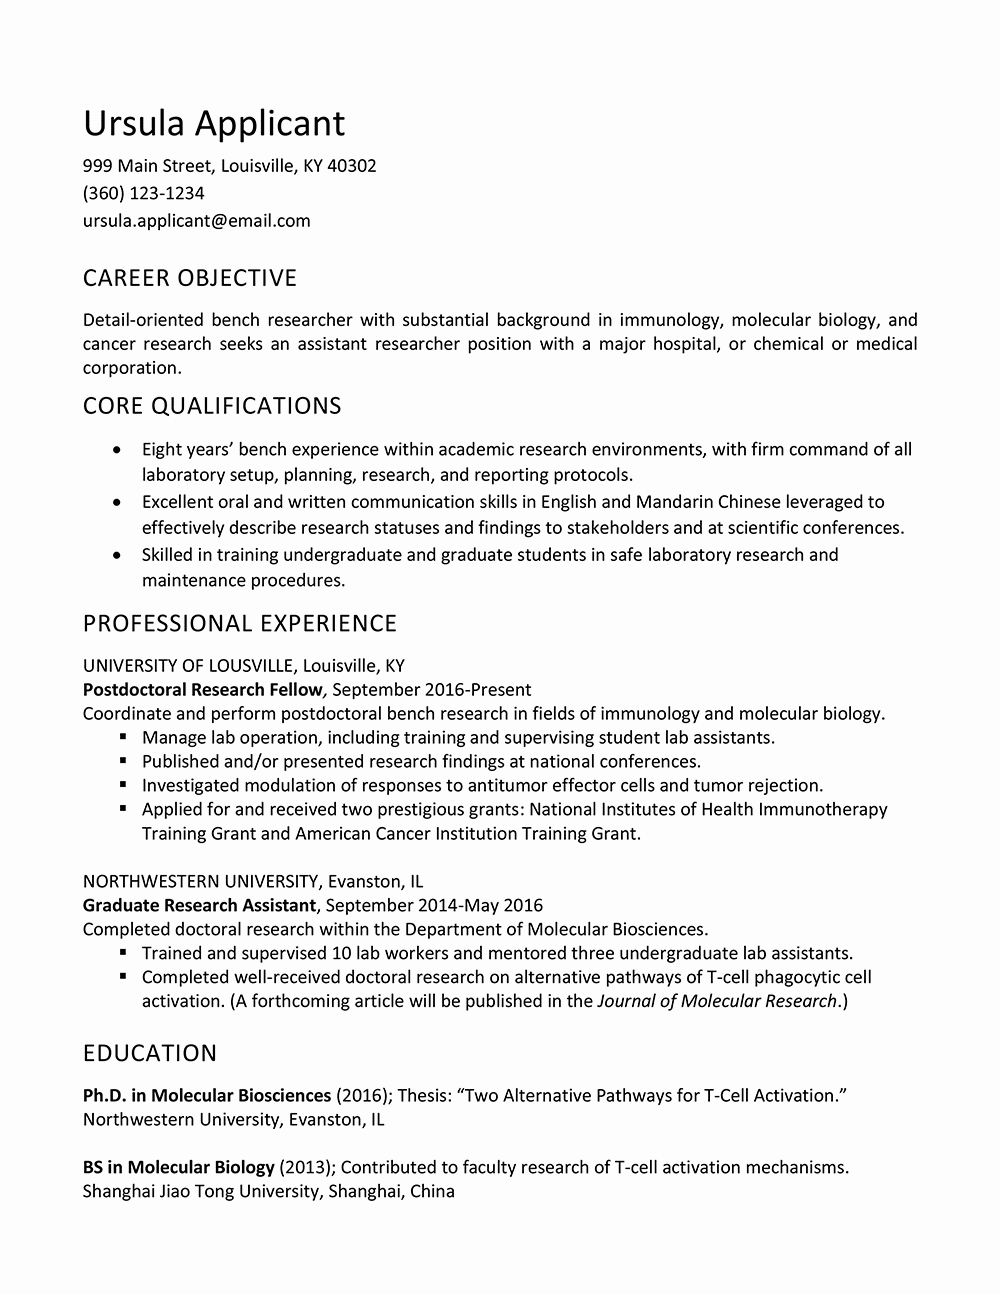 Biology Research assistant Resume Luxury Research assistant Resume Description